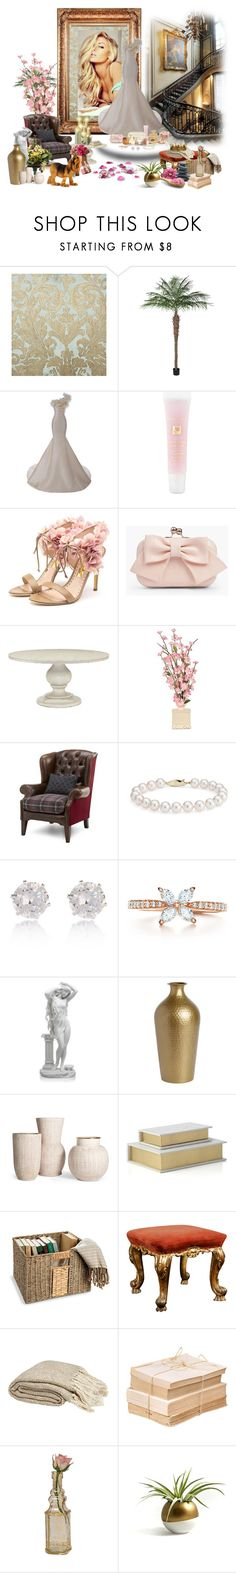 """""""I am here ..what was your other two wishes ? 5th June 2016"""" by angela-coulter ❤ liked on Polyvore featuring Hamda Al Fahim, Lancôme, Rupert Sanderson, Boohoo, Reine, Blue Nile, River Island, Tiffany & Co., Improvements and Cultural Intrigue"""